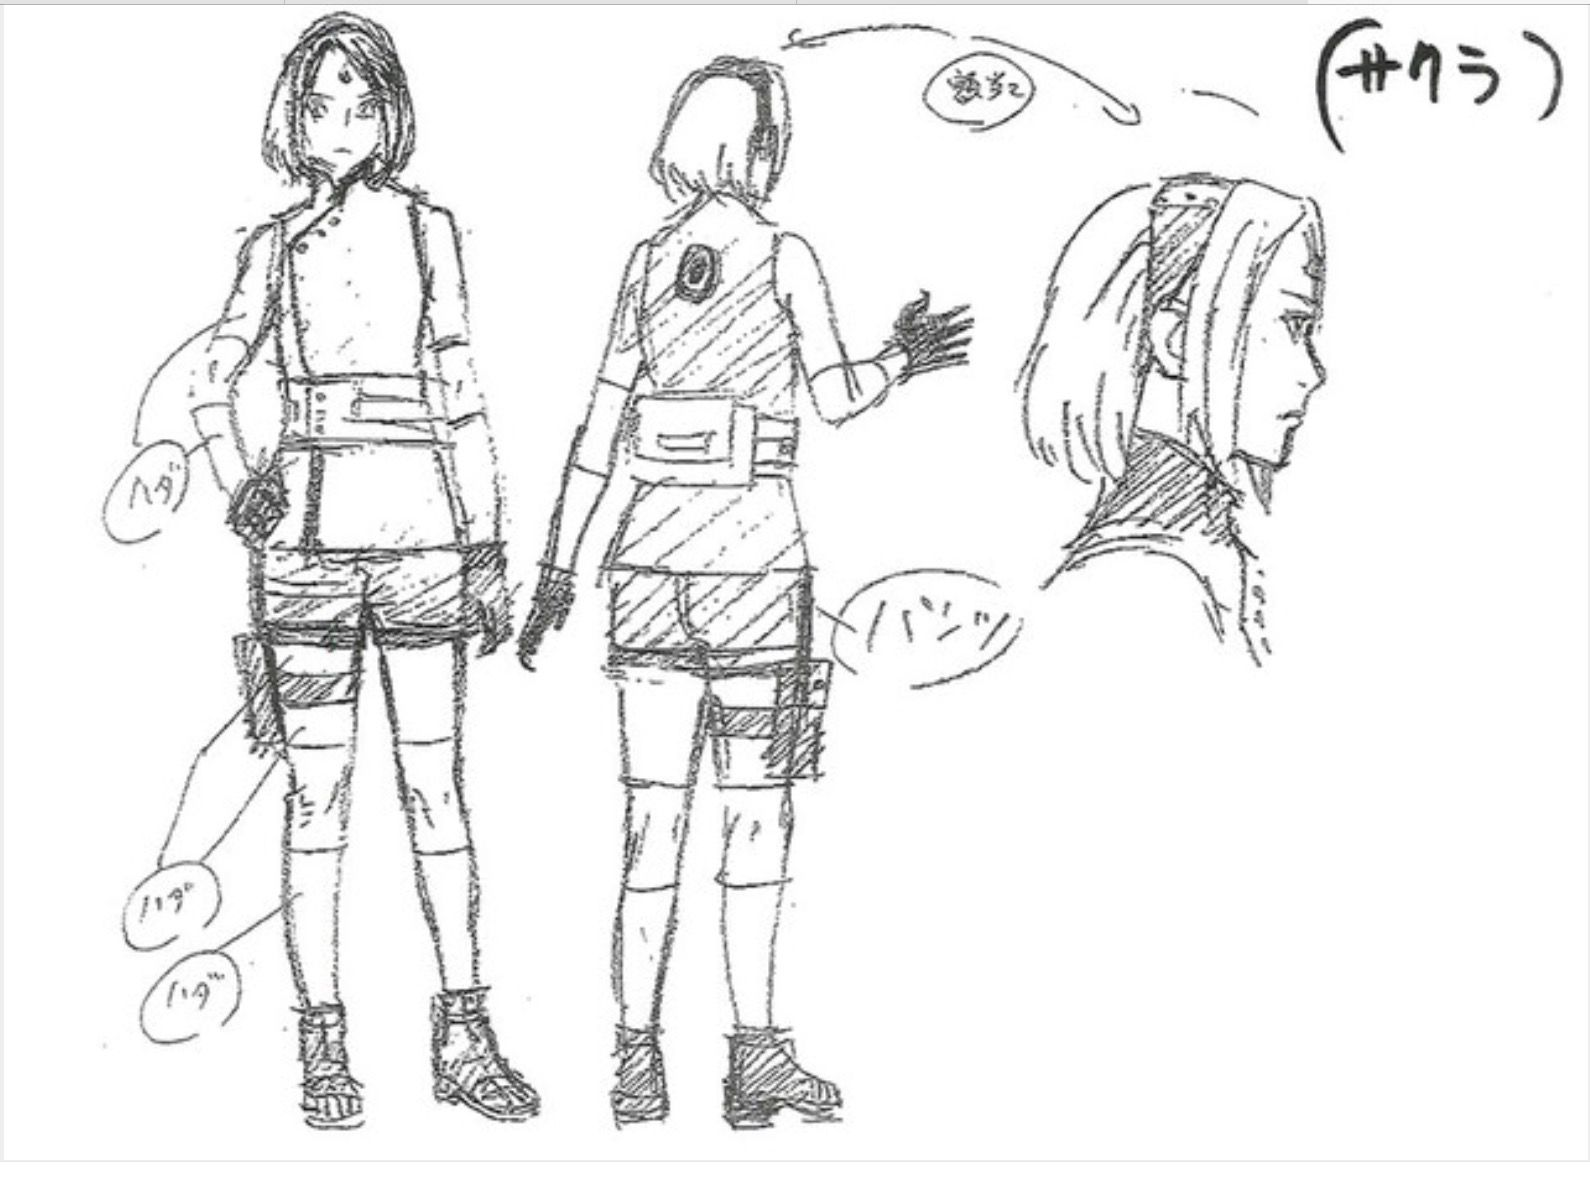 Manga character design for Sakura in The Last.